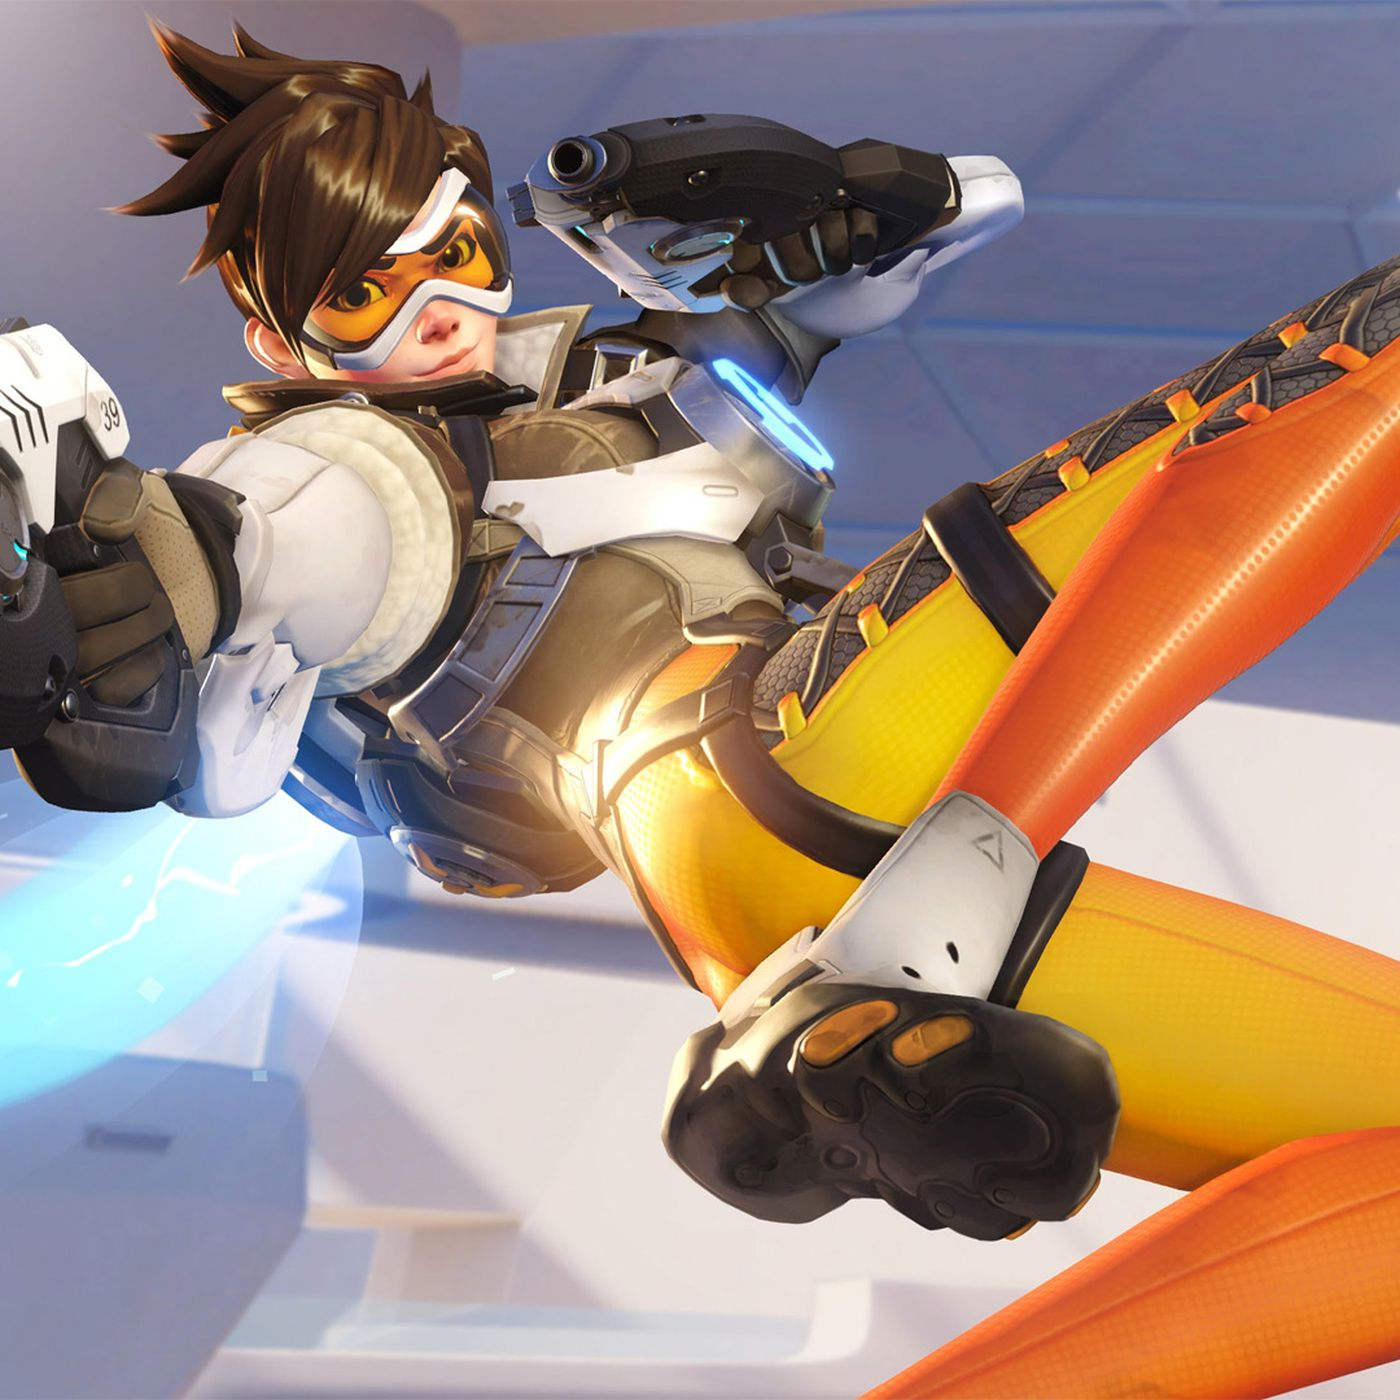 Blizzard is removing a sexualized pose from Overwatch